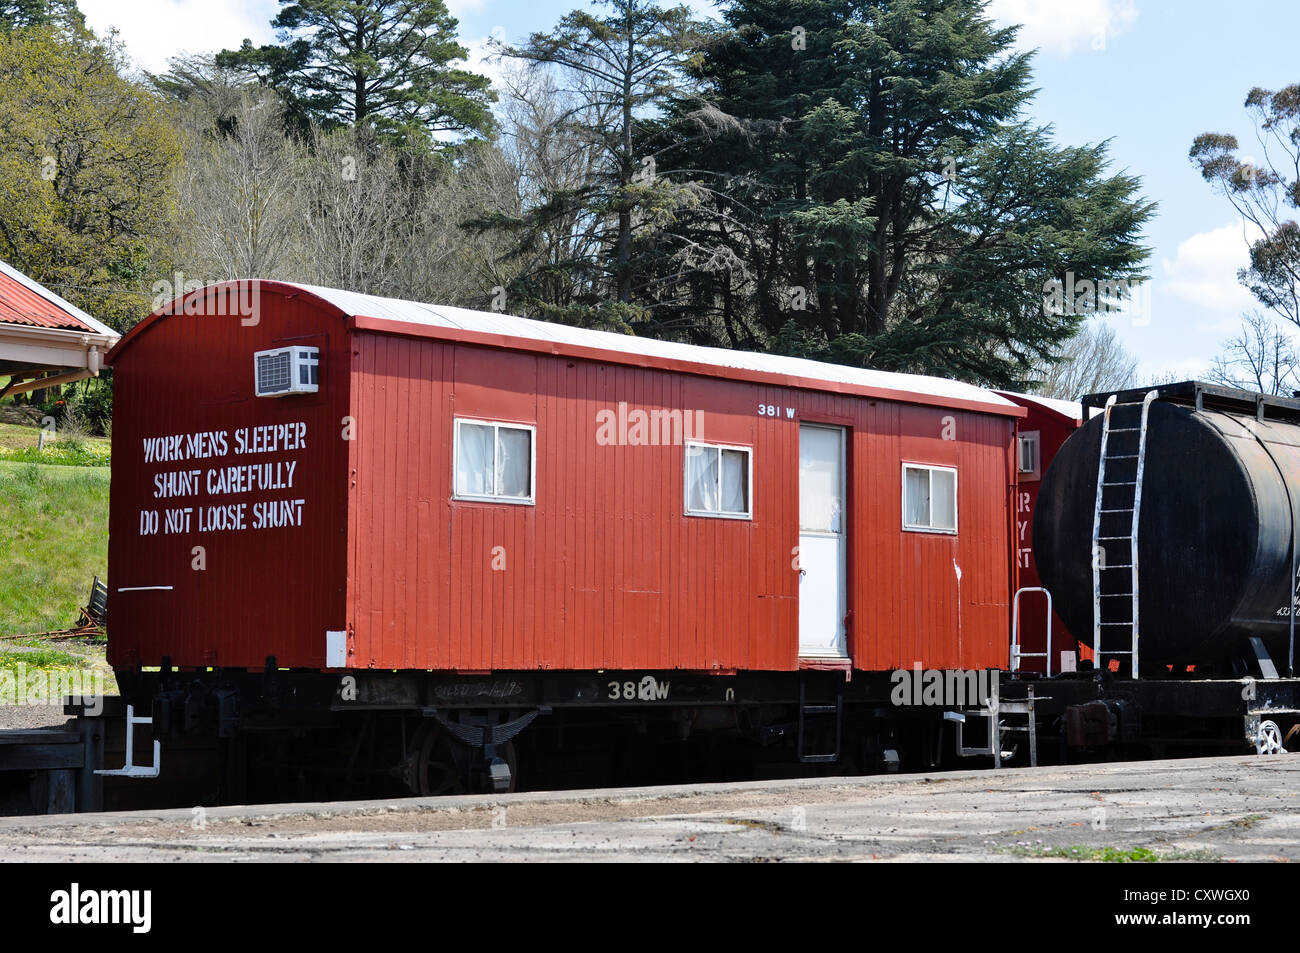 Vintage red workmen's sleeper car in Daylesford, Central Victoria, Australia - Stock Image